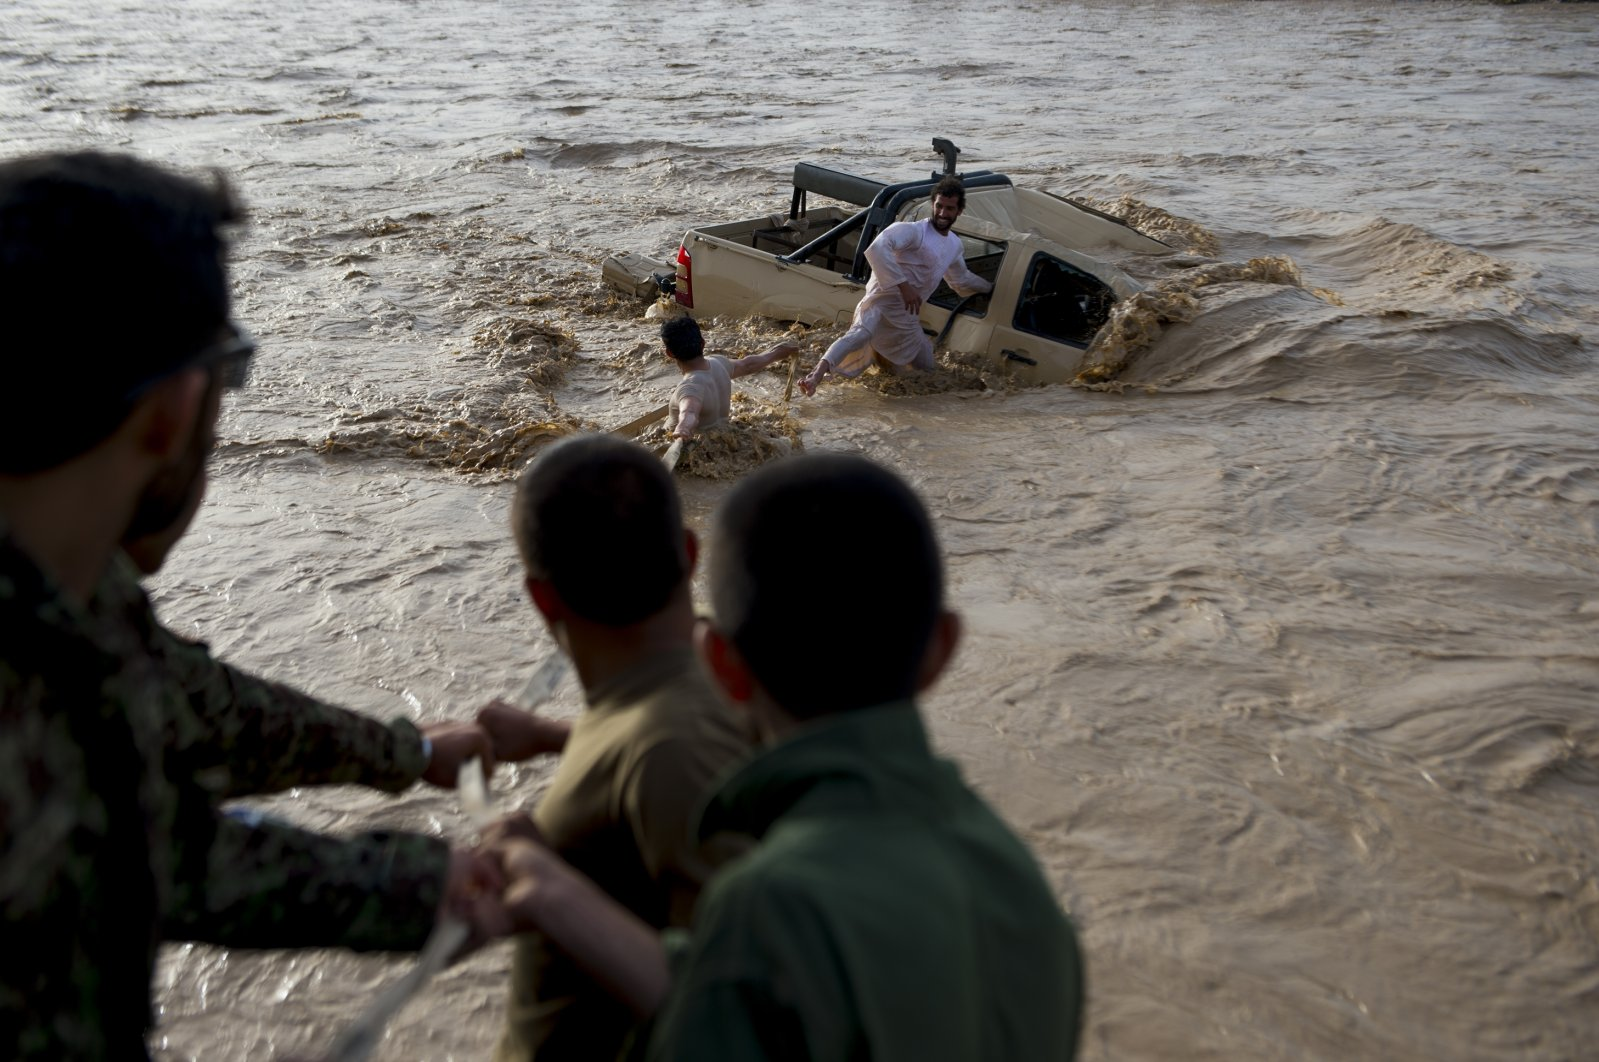 In this file photo from April 23, 2013, two men with help from a crowd attempt attach a tow line to an Afghan Army truck that was swept away by floodwaters. (Getty Images)